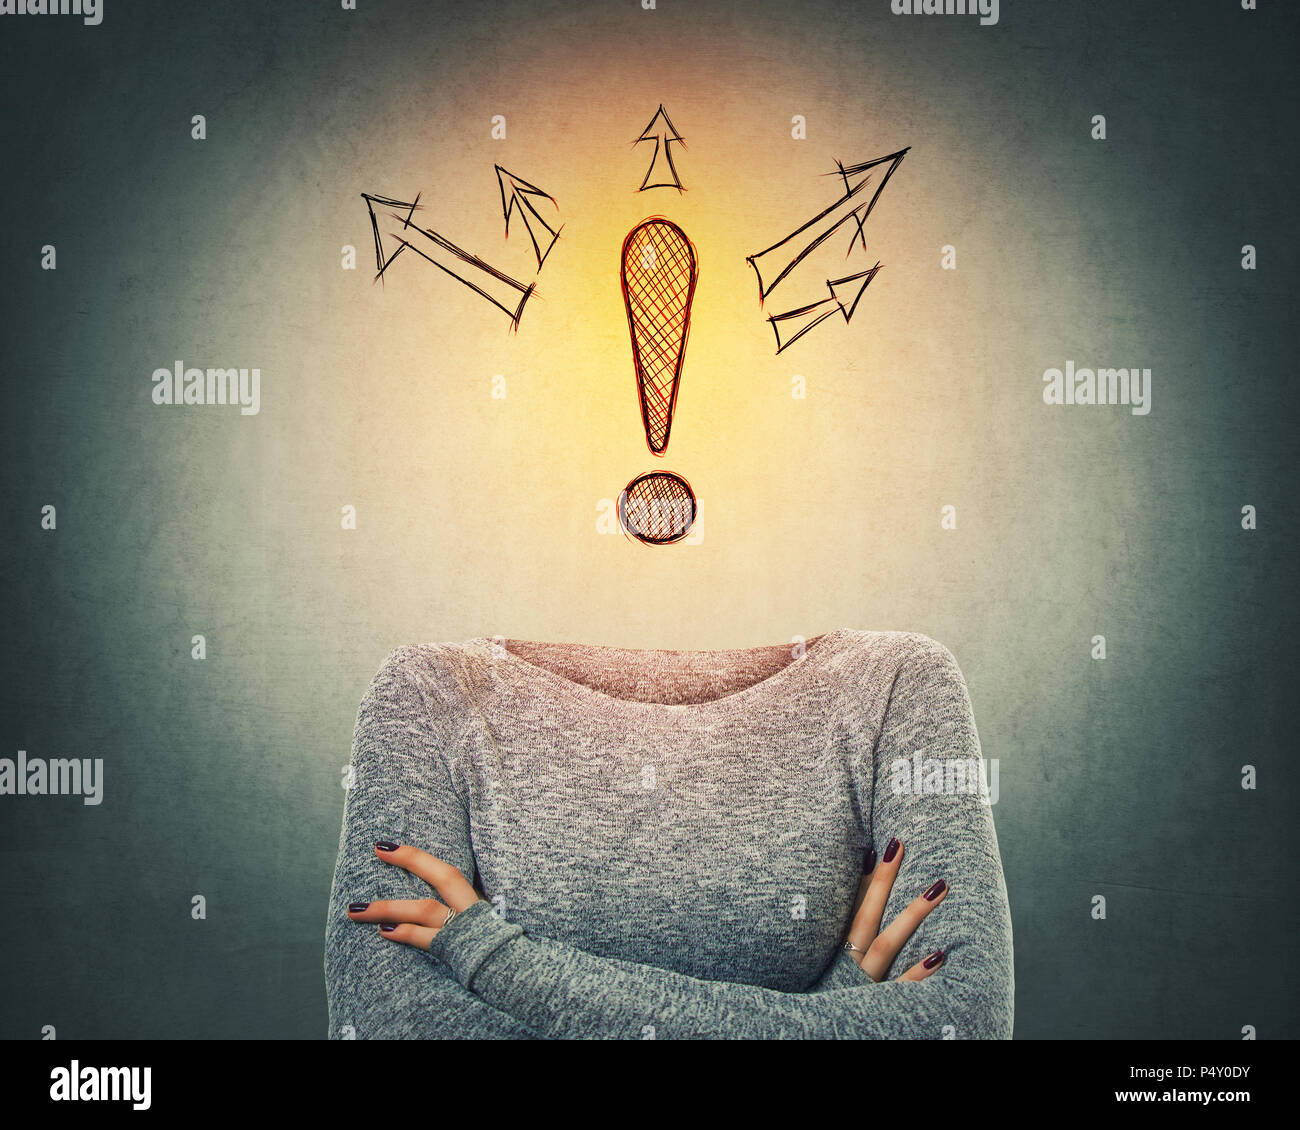 Surreal image as confident woman with crossed hands and drawn exclamation mark instead of head with arrows spread on different sides. Incognito extrov - Stock Image